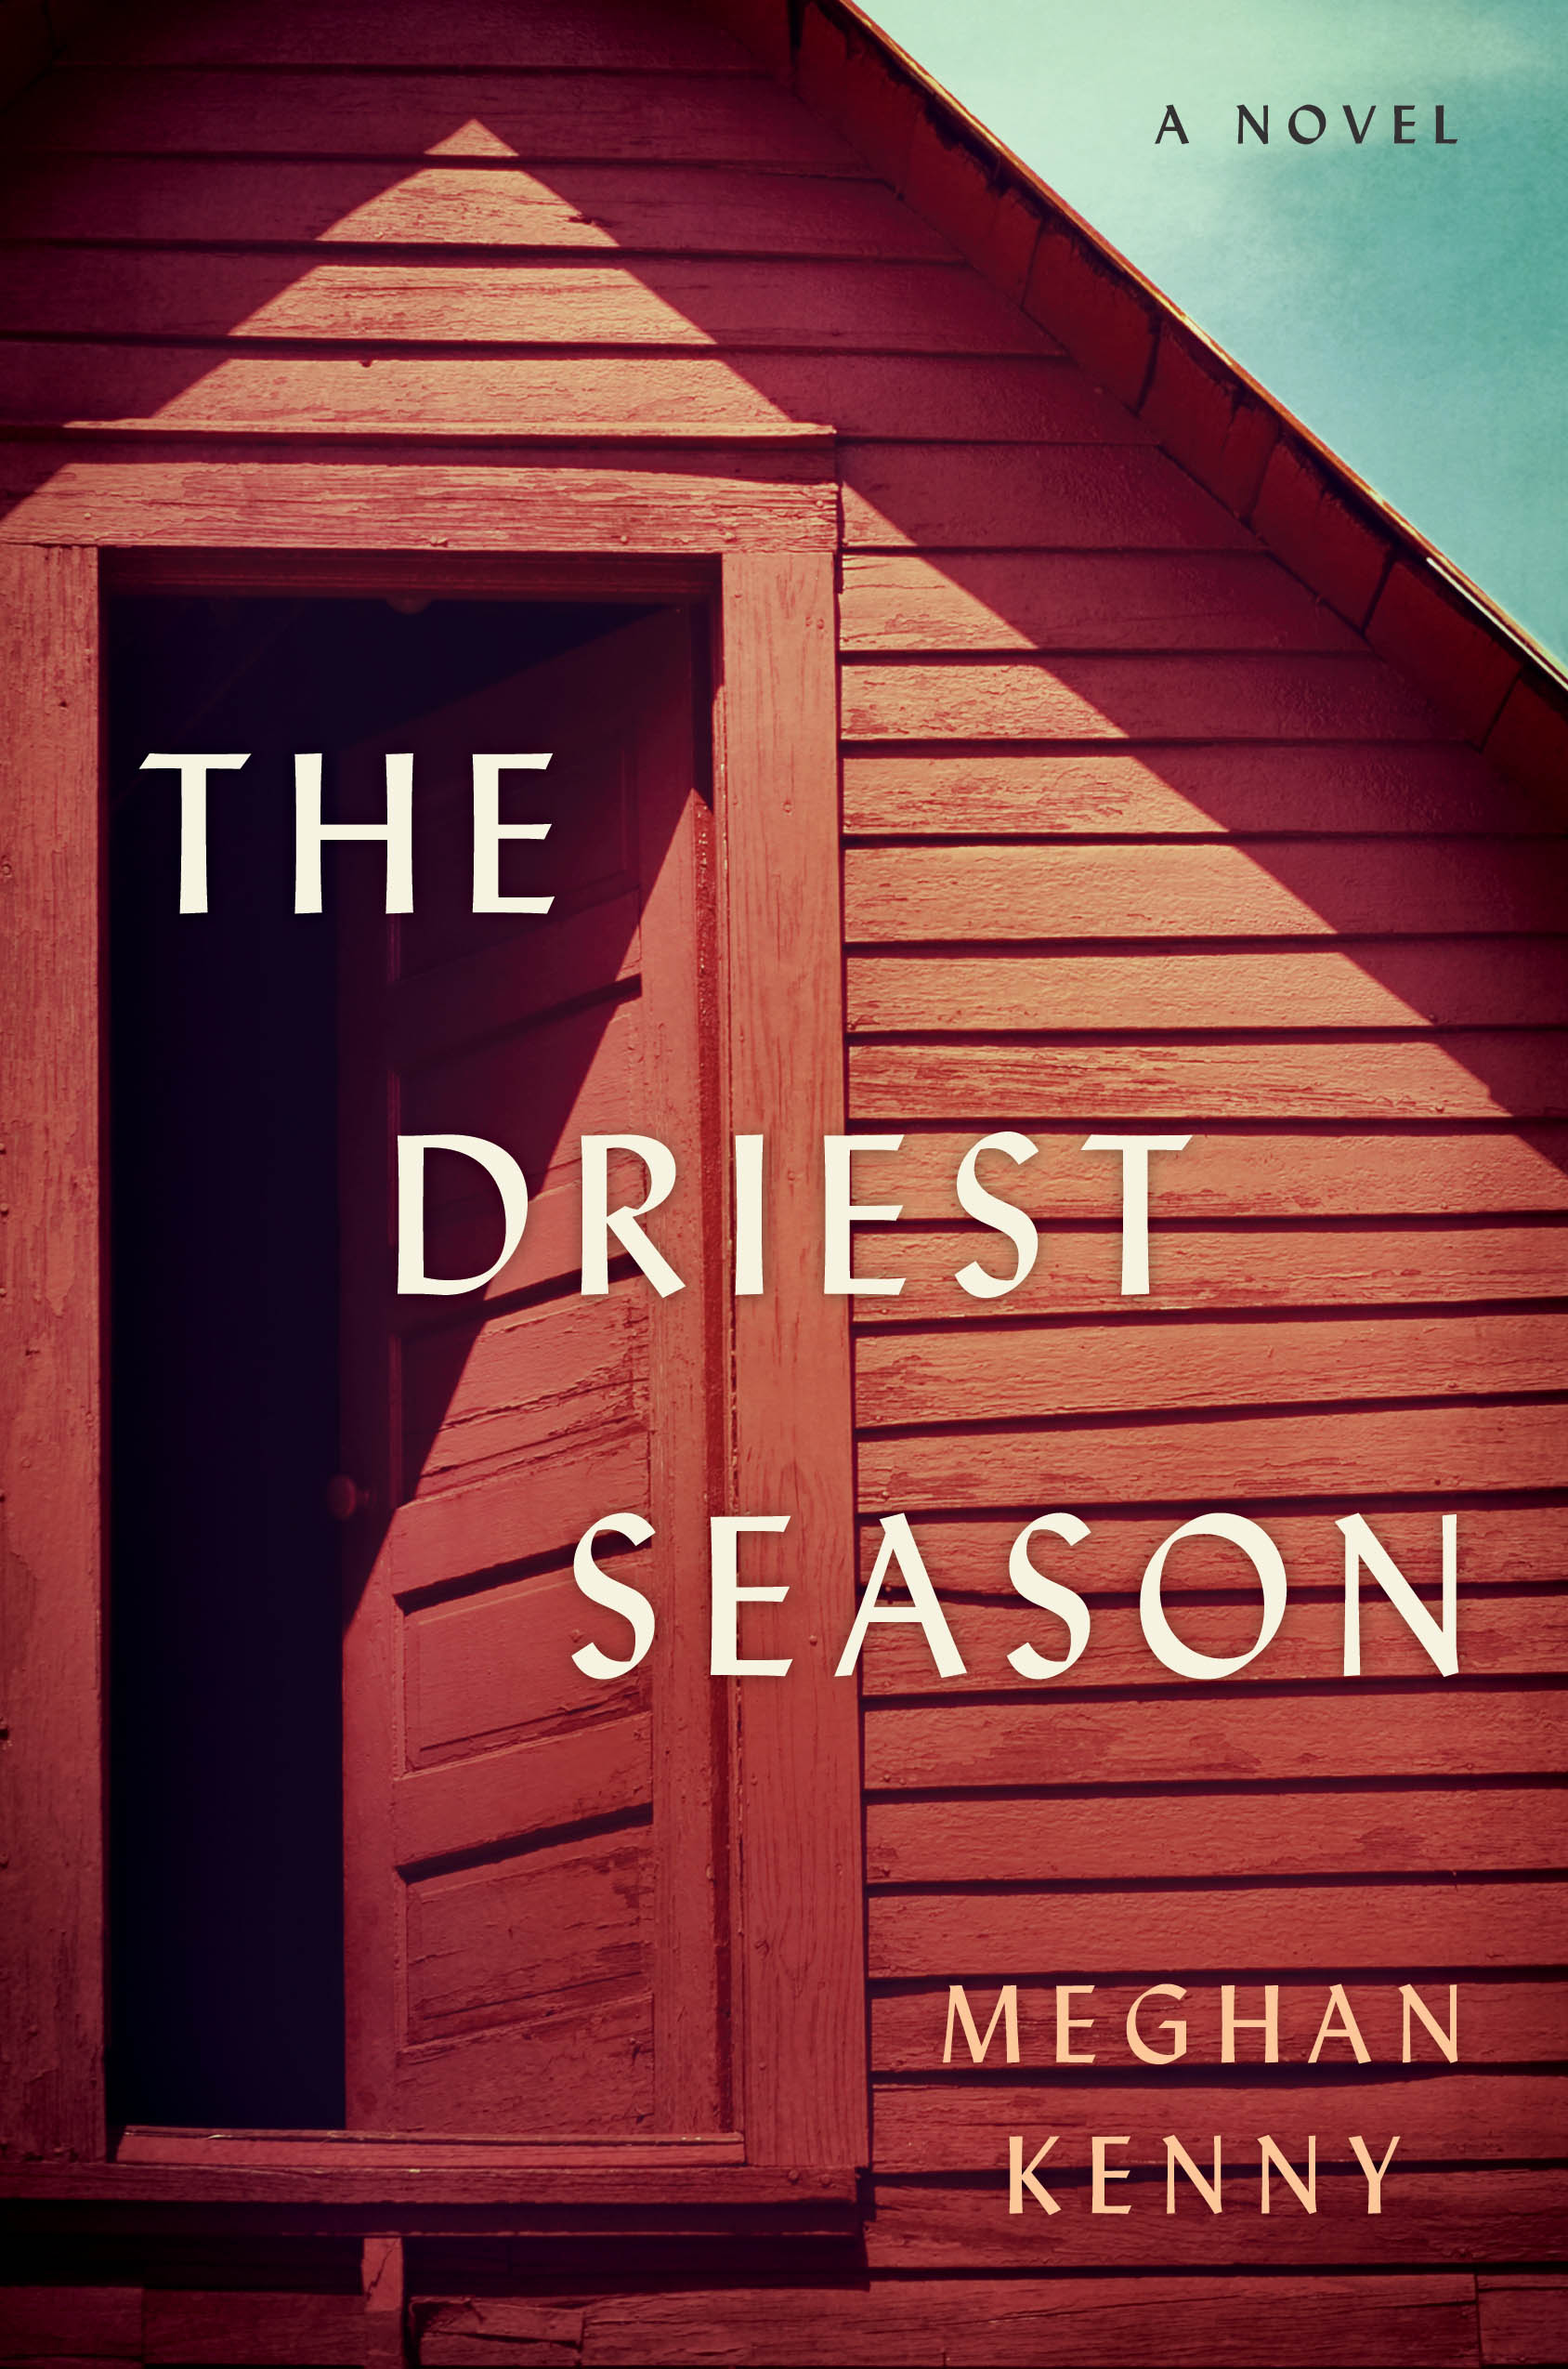 The Driest Season: A Novel